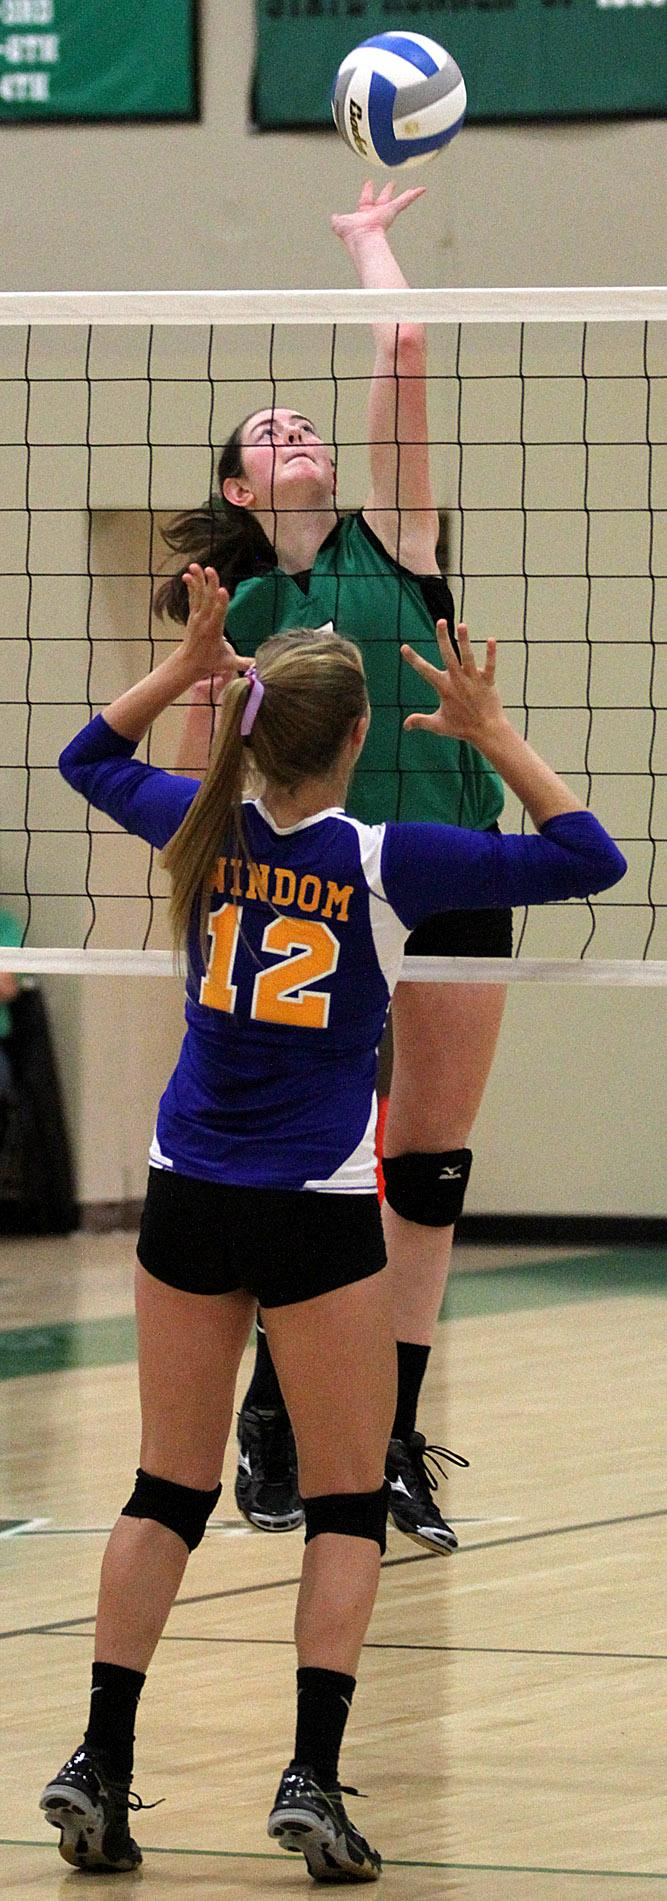 Momentous: Arrows beat Eagles, 3-2, in 5-set thriller | Pipestone